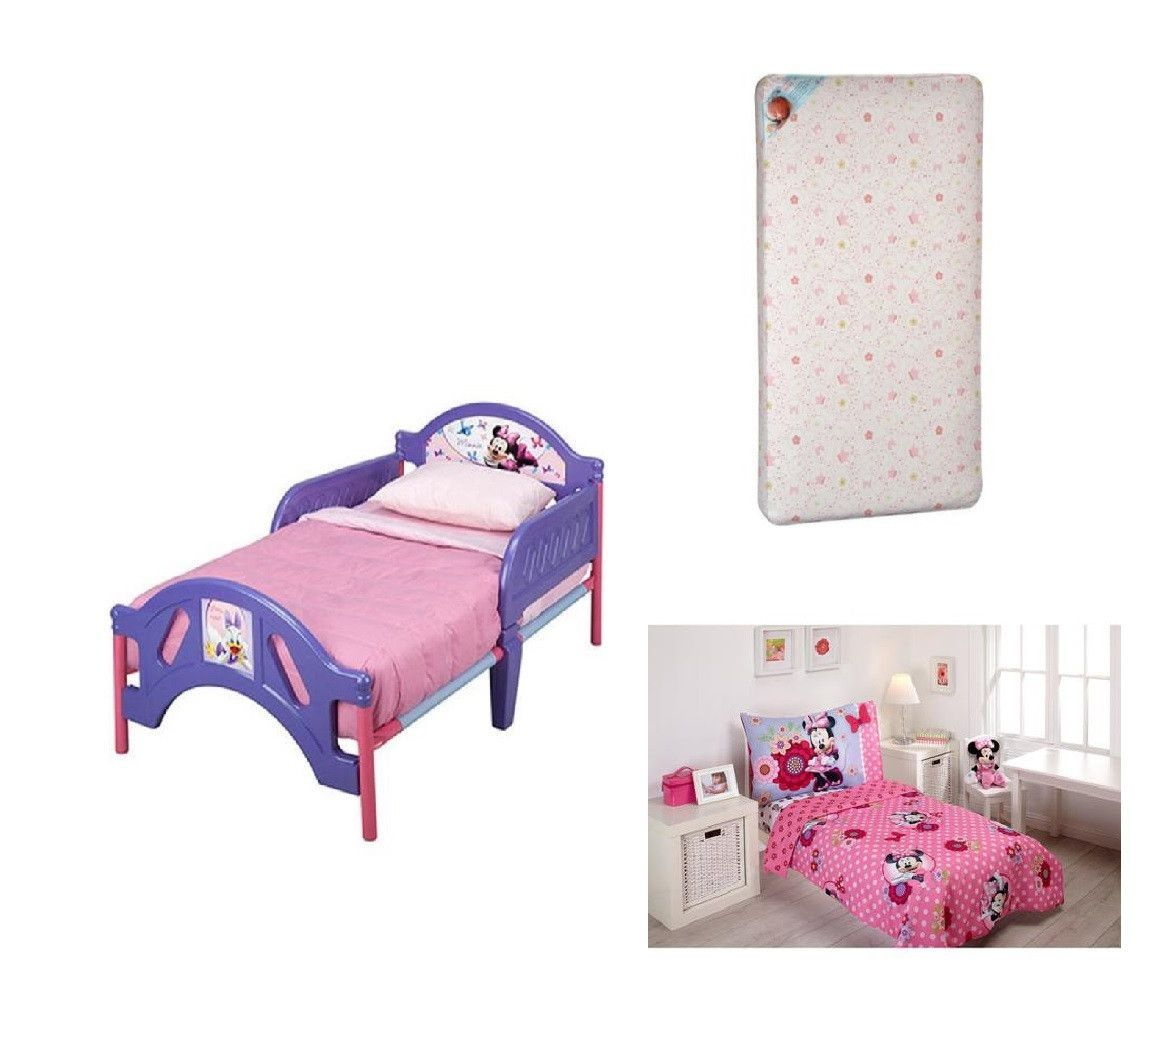 Best Toddler Character Bed Toddler Mattress And Complete 400 x 300